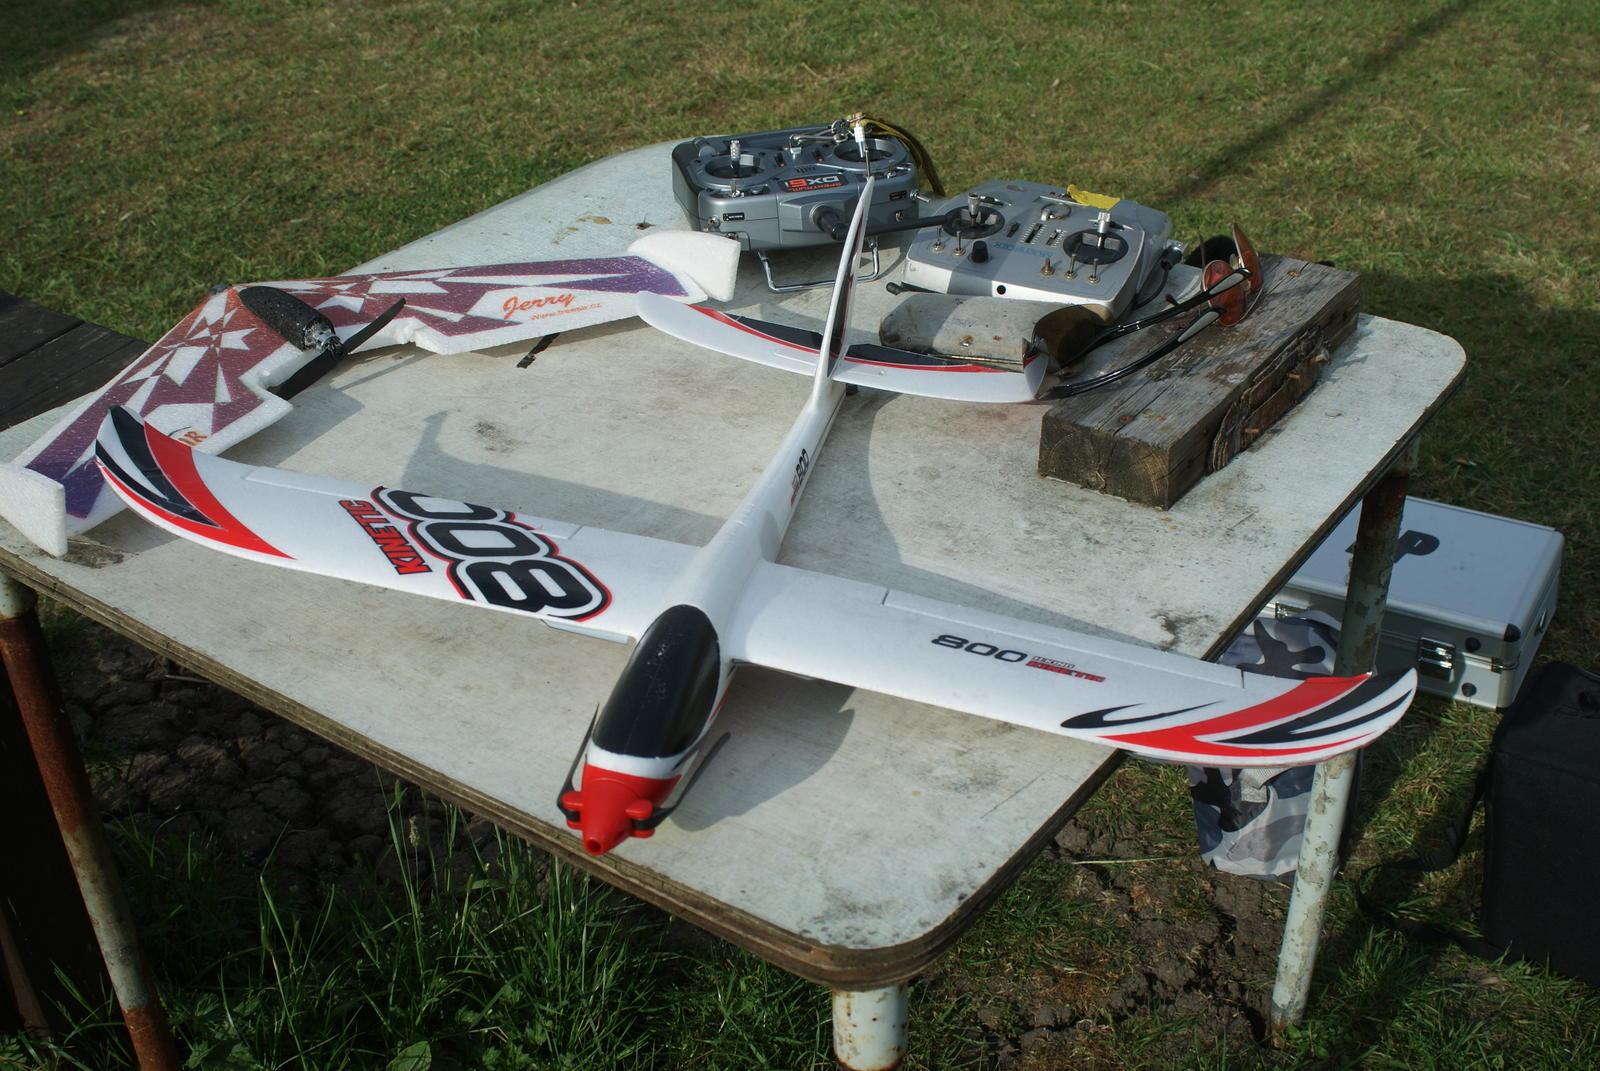 Hobby king Kinetic 800, flies on the MPX. Very nice flyer.